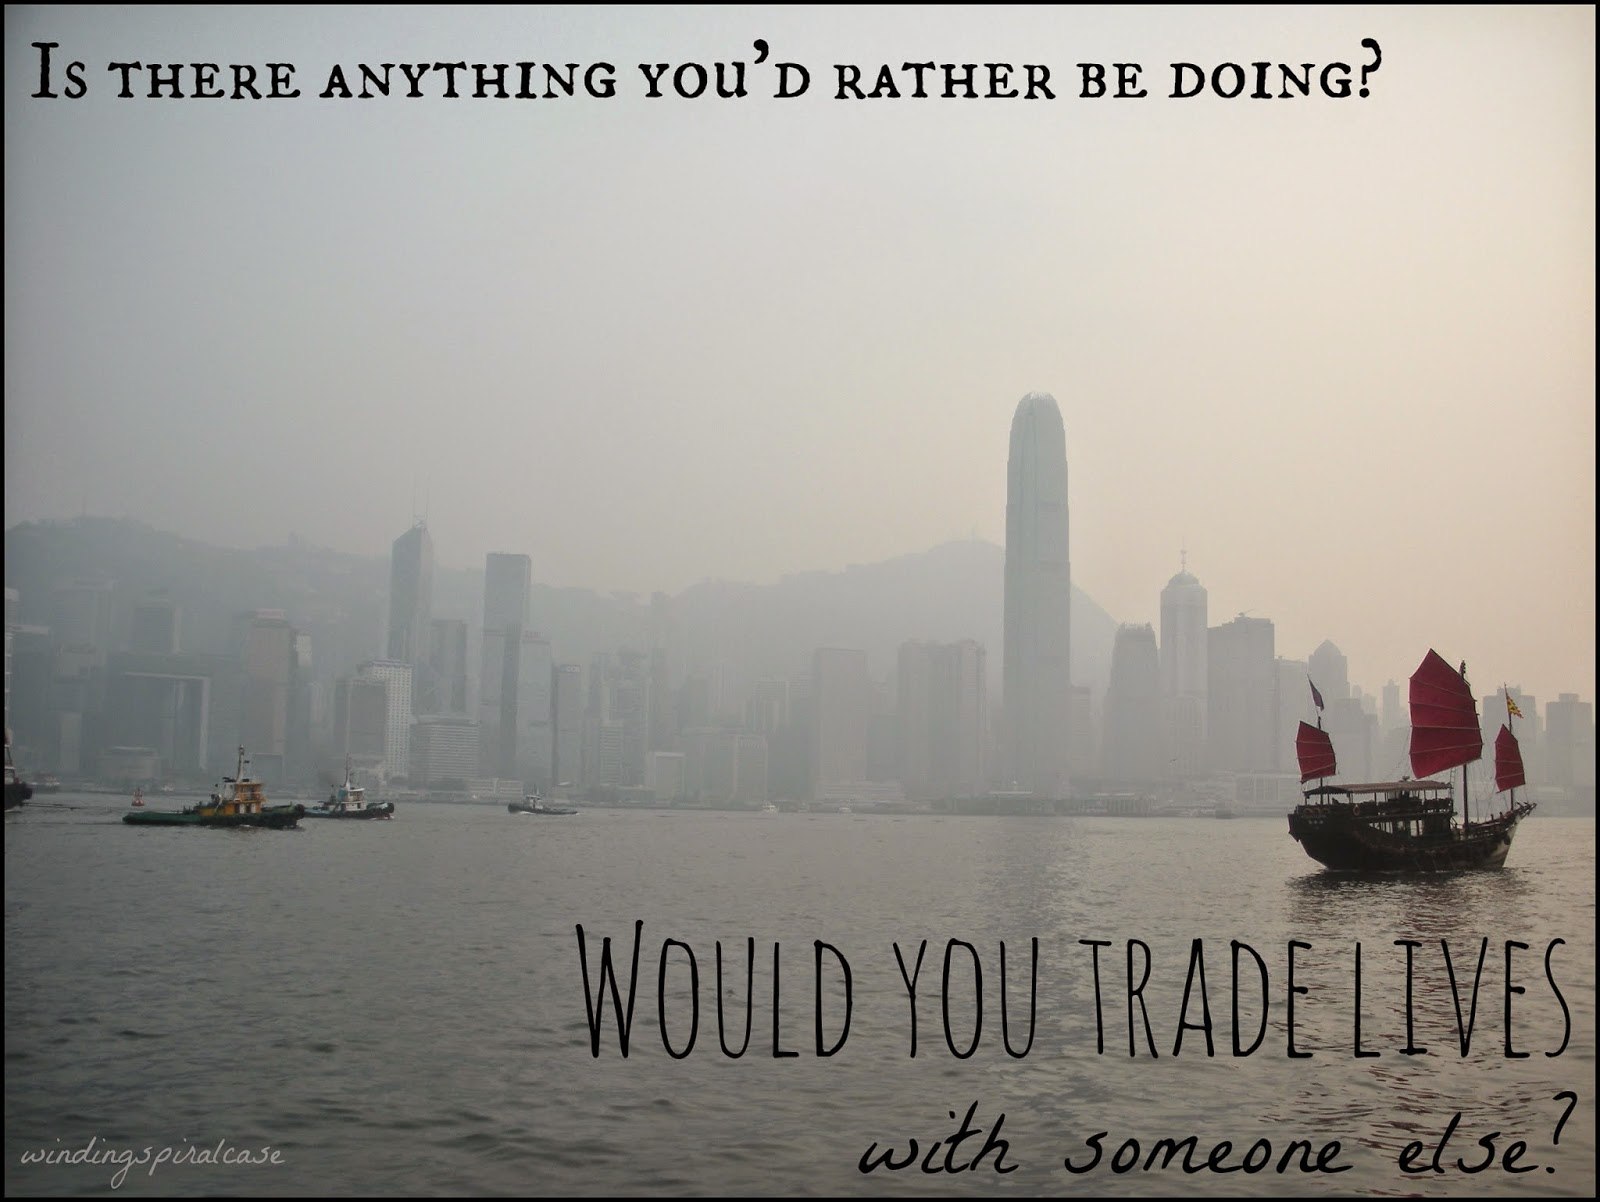 would you trade lives with someone else